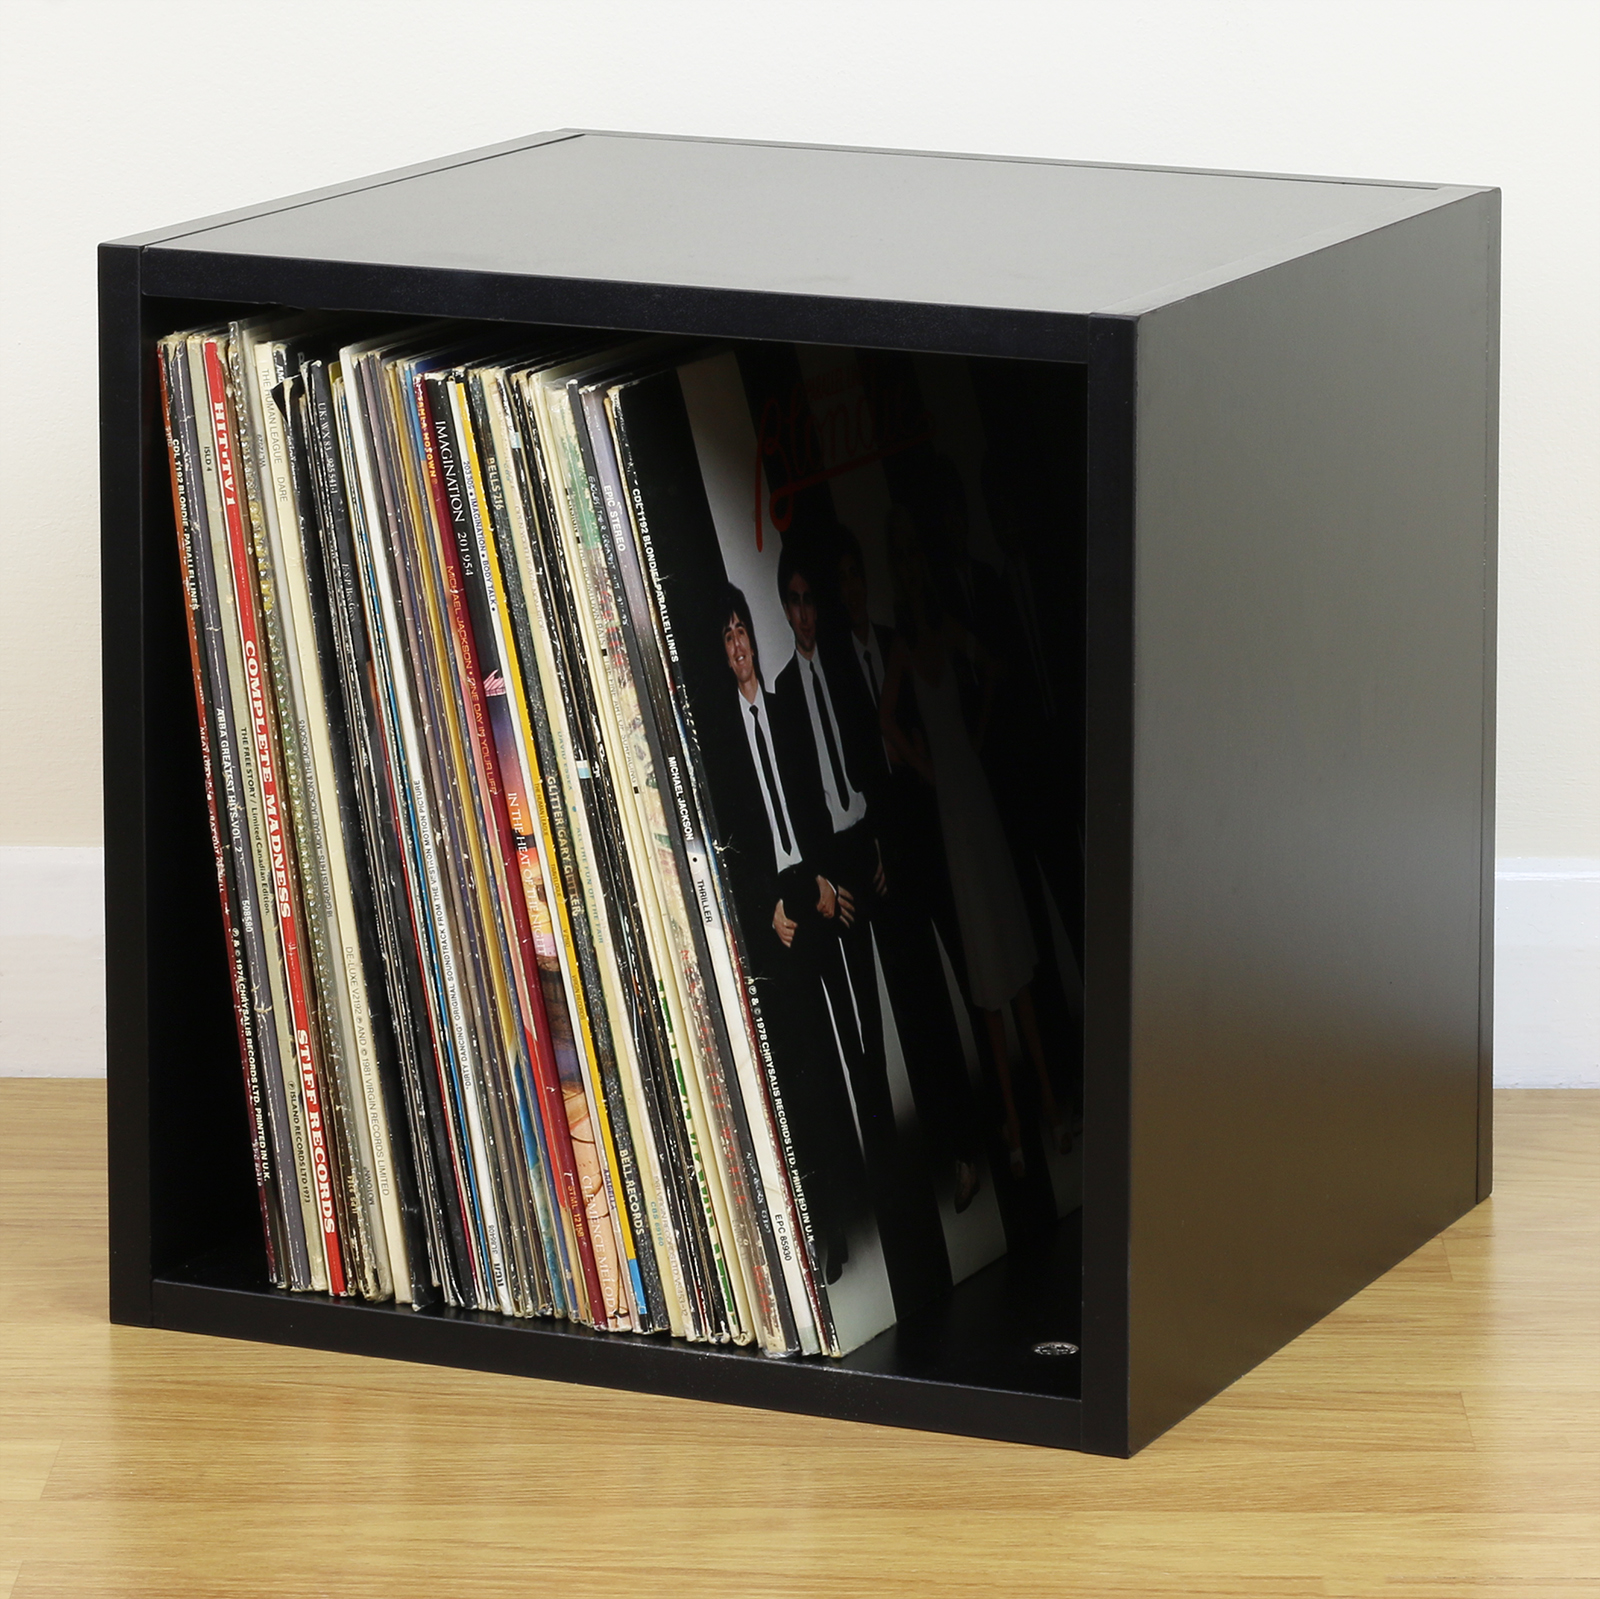 Sentinel Black Square LP/Vinyl Music Record Storage Cube/Cabinet Box Home  Display Unit